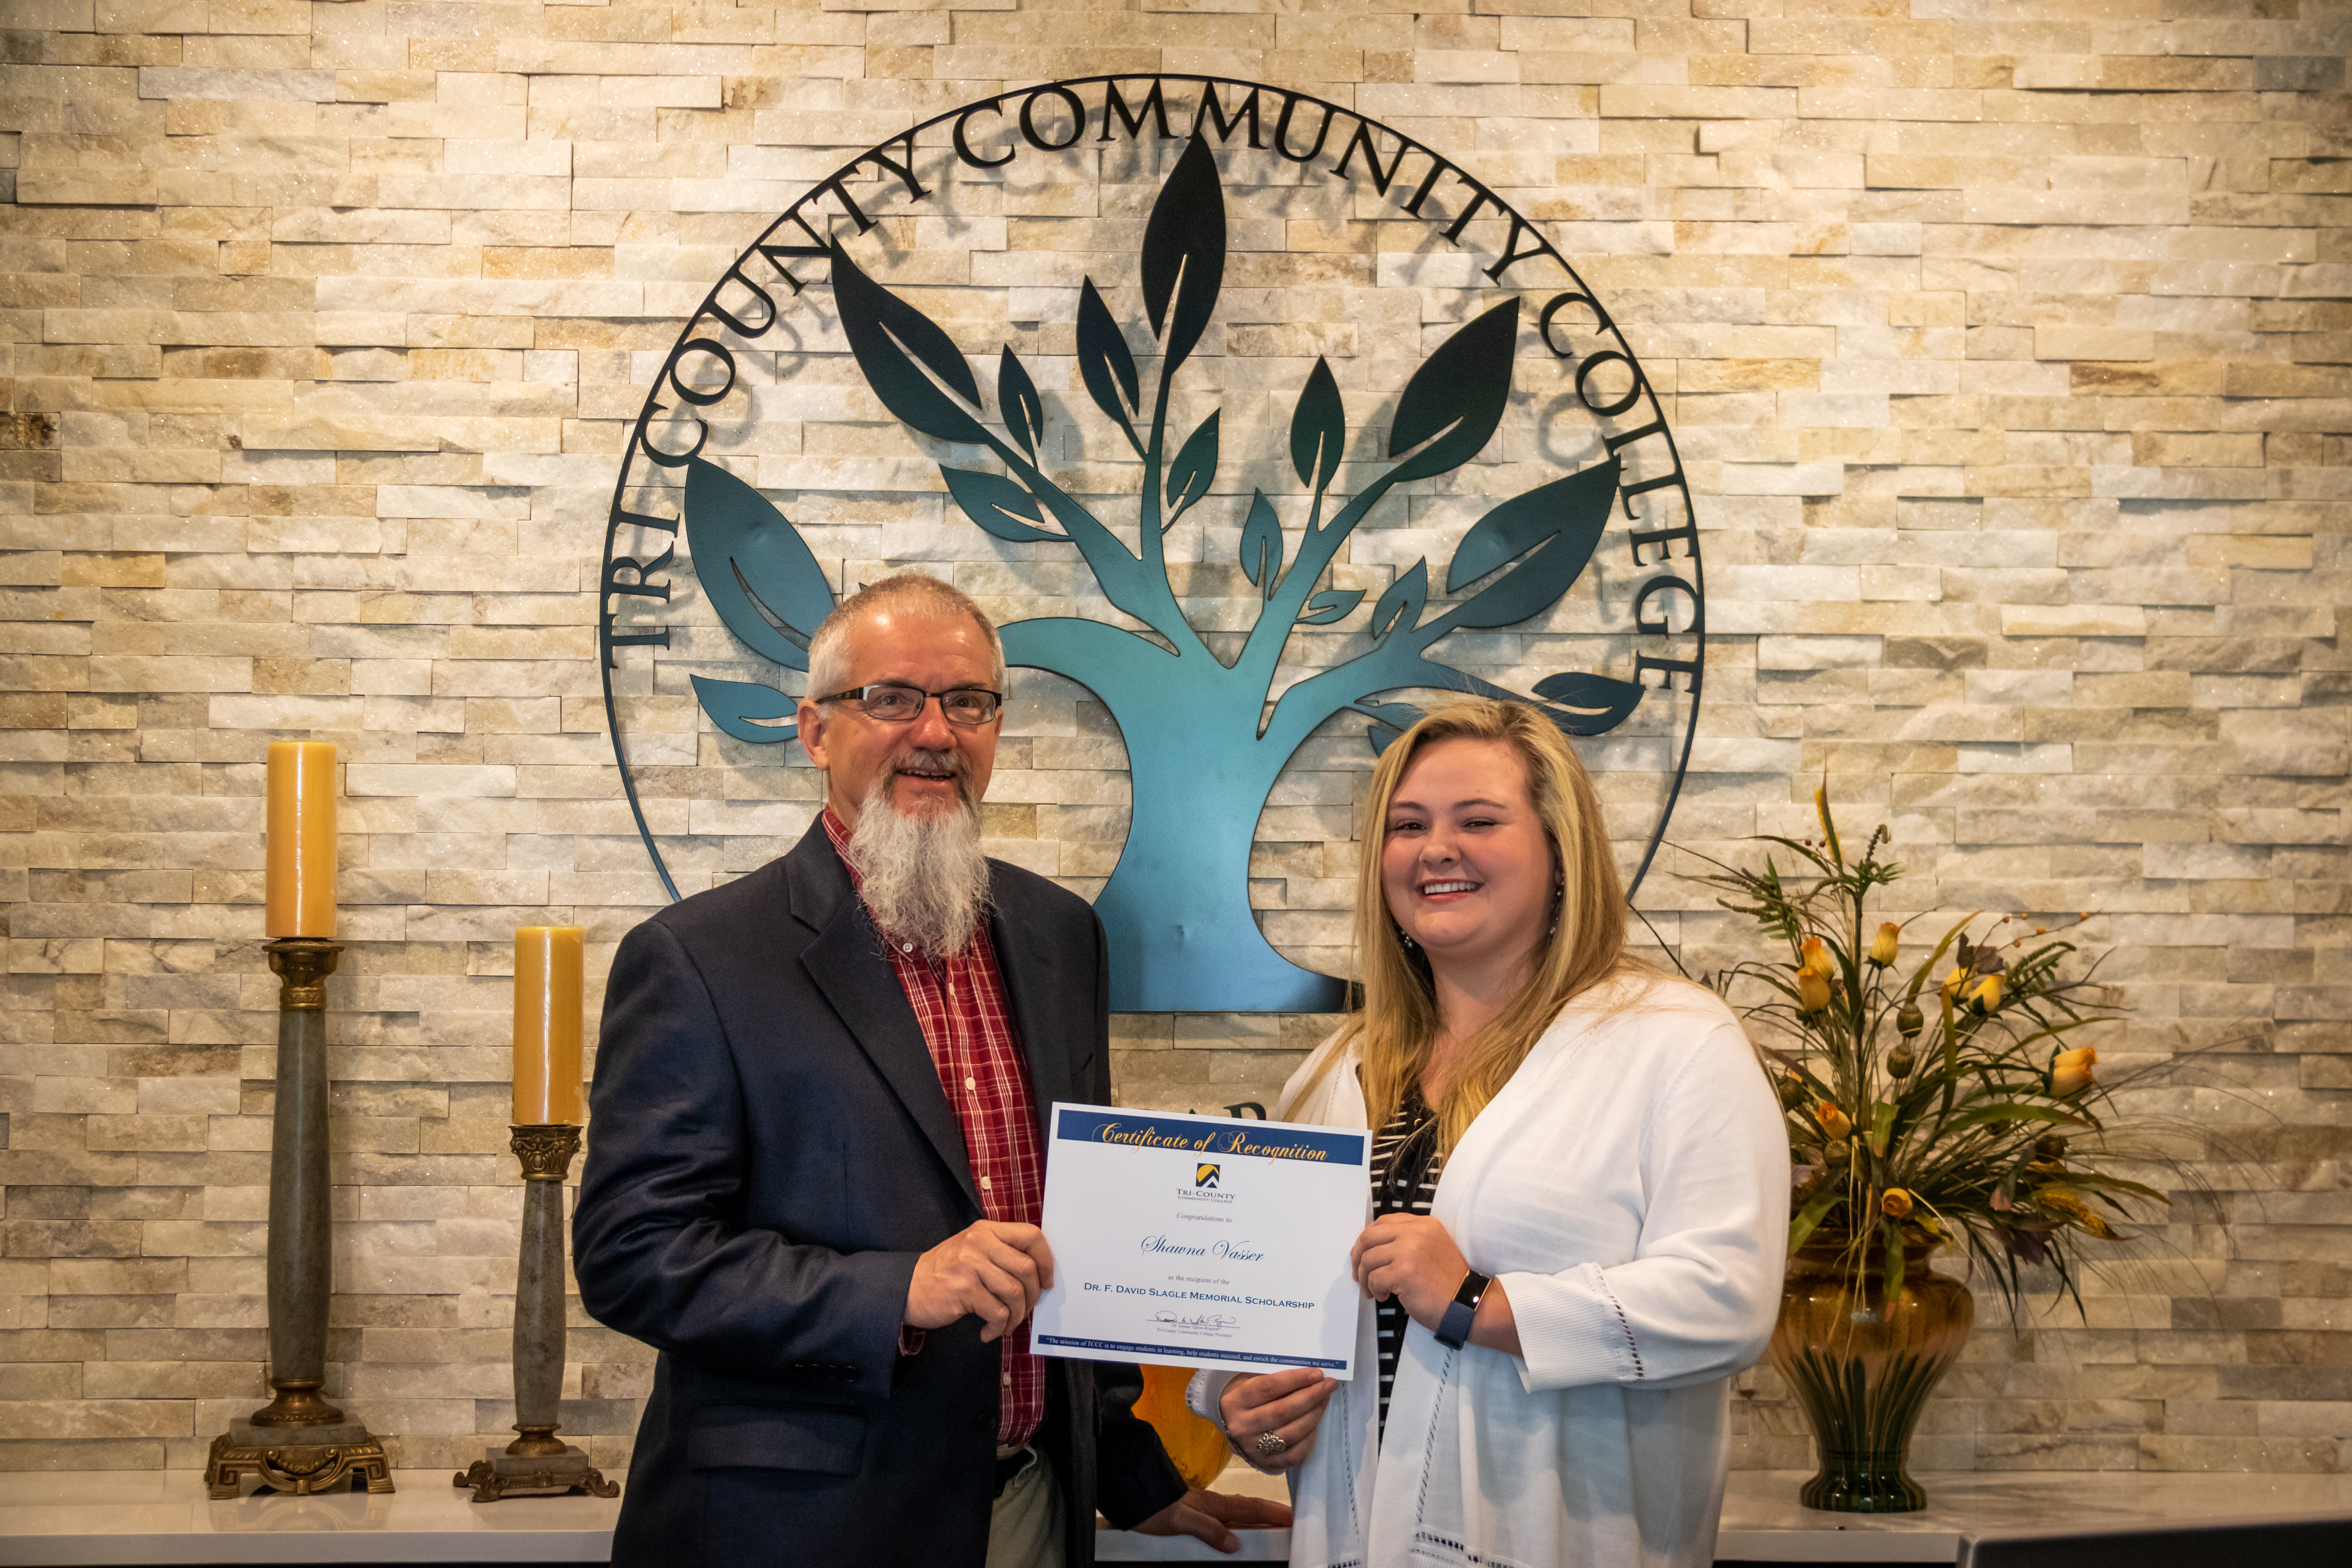 Cutline: (from left) Bo Gray, executive director of the Tri-County Community College Foundation, awards the inaugural Dr. F. David Slagle Memorial Scholarship to Shawna Vasser at the main campus in Peachtree.